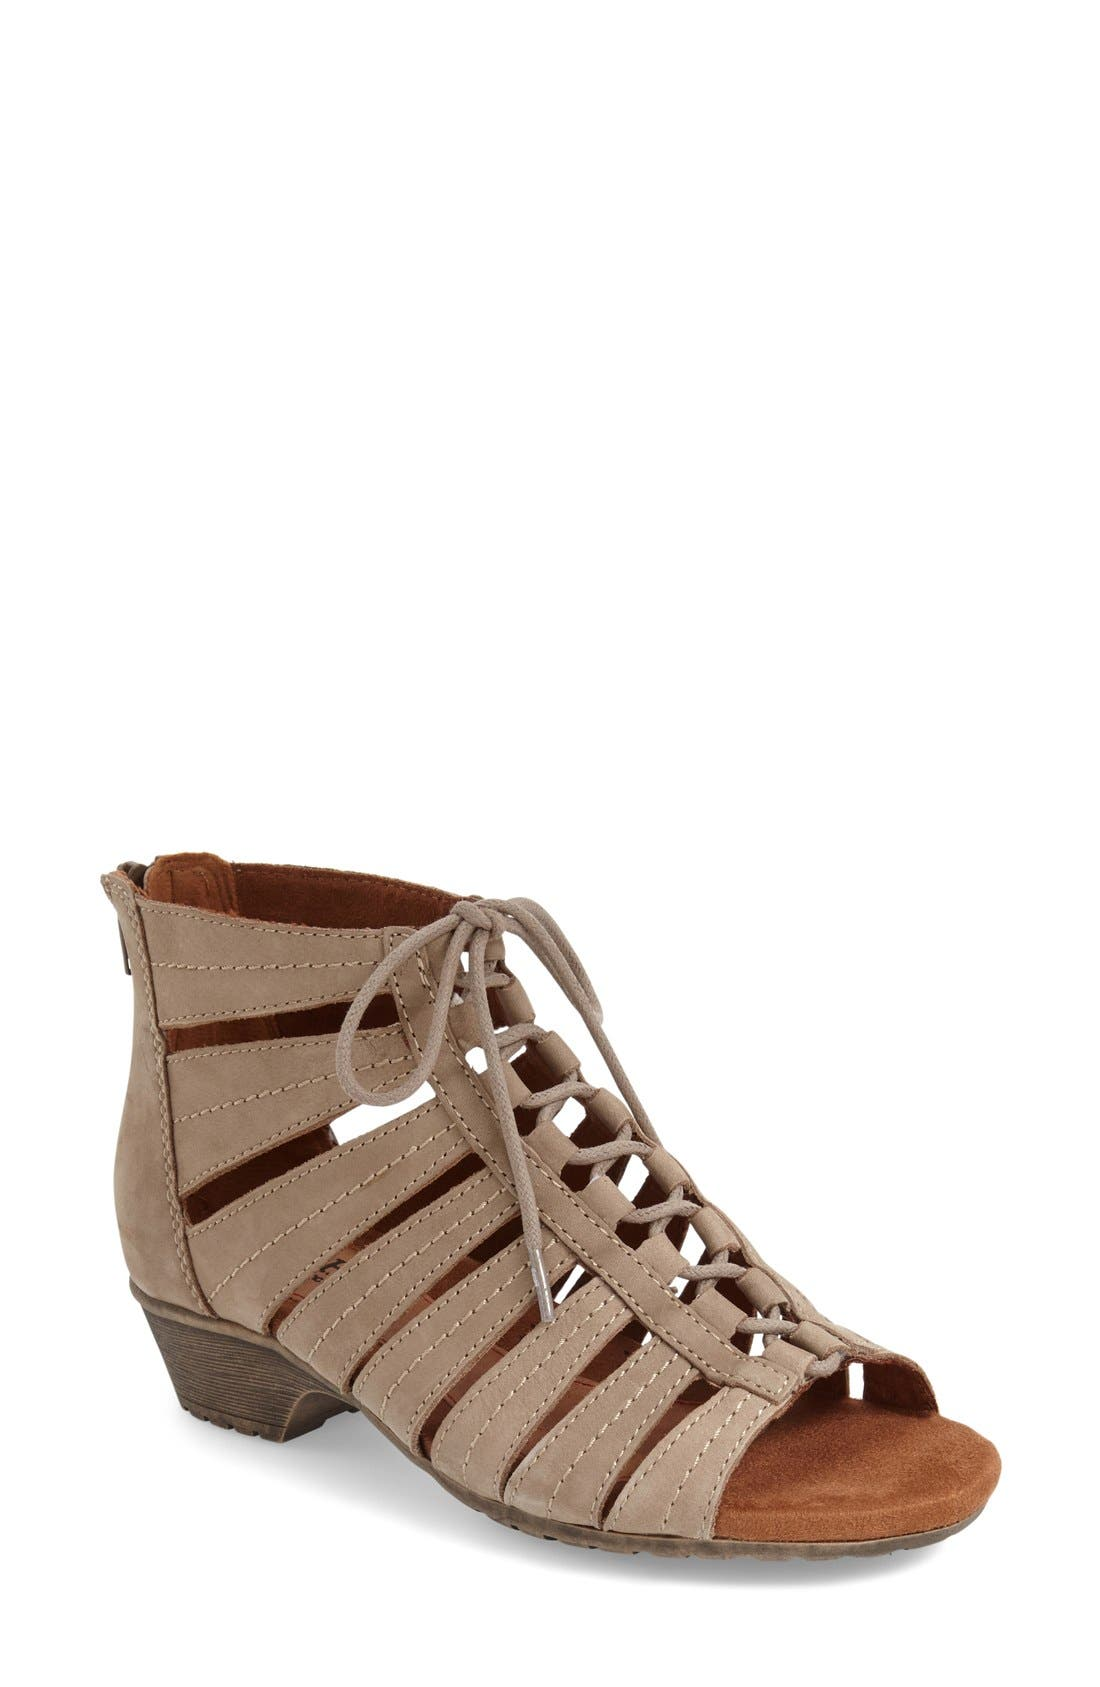 Rockport Cobb Hill 'Gabby' Lace-Up Sandal (Women)